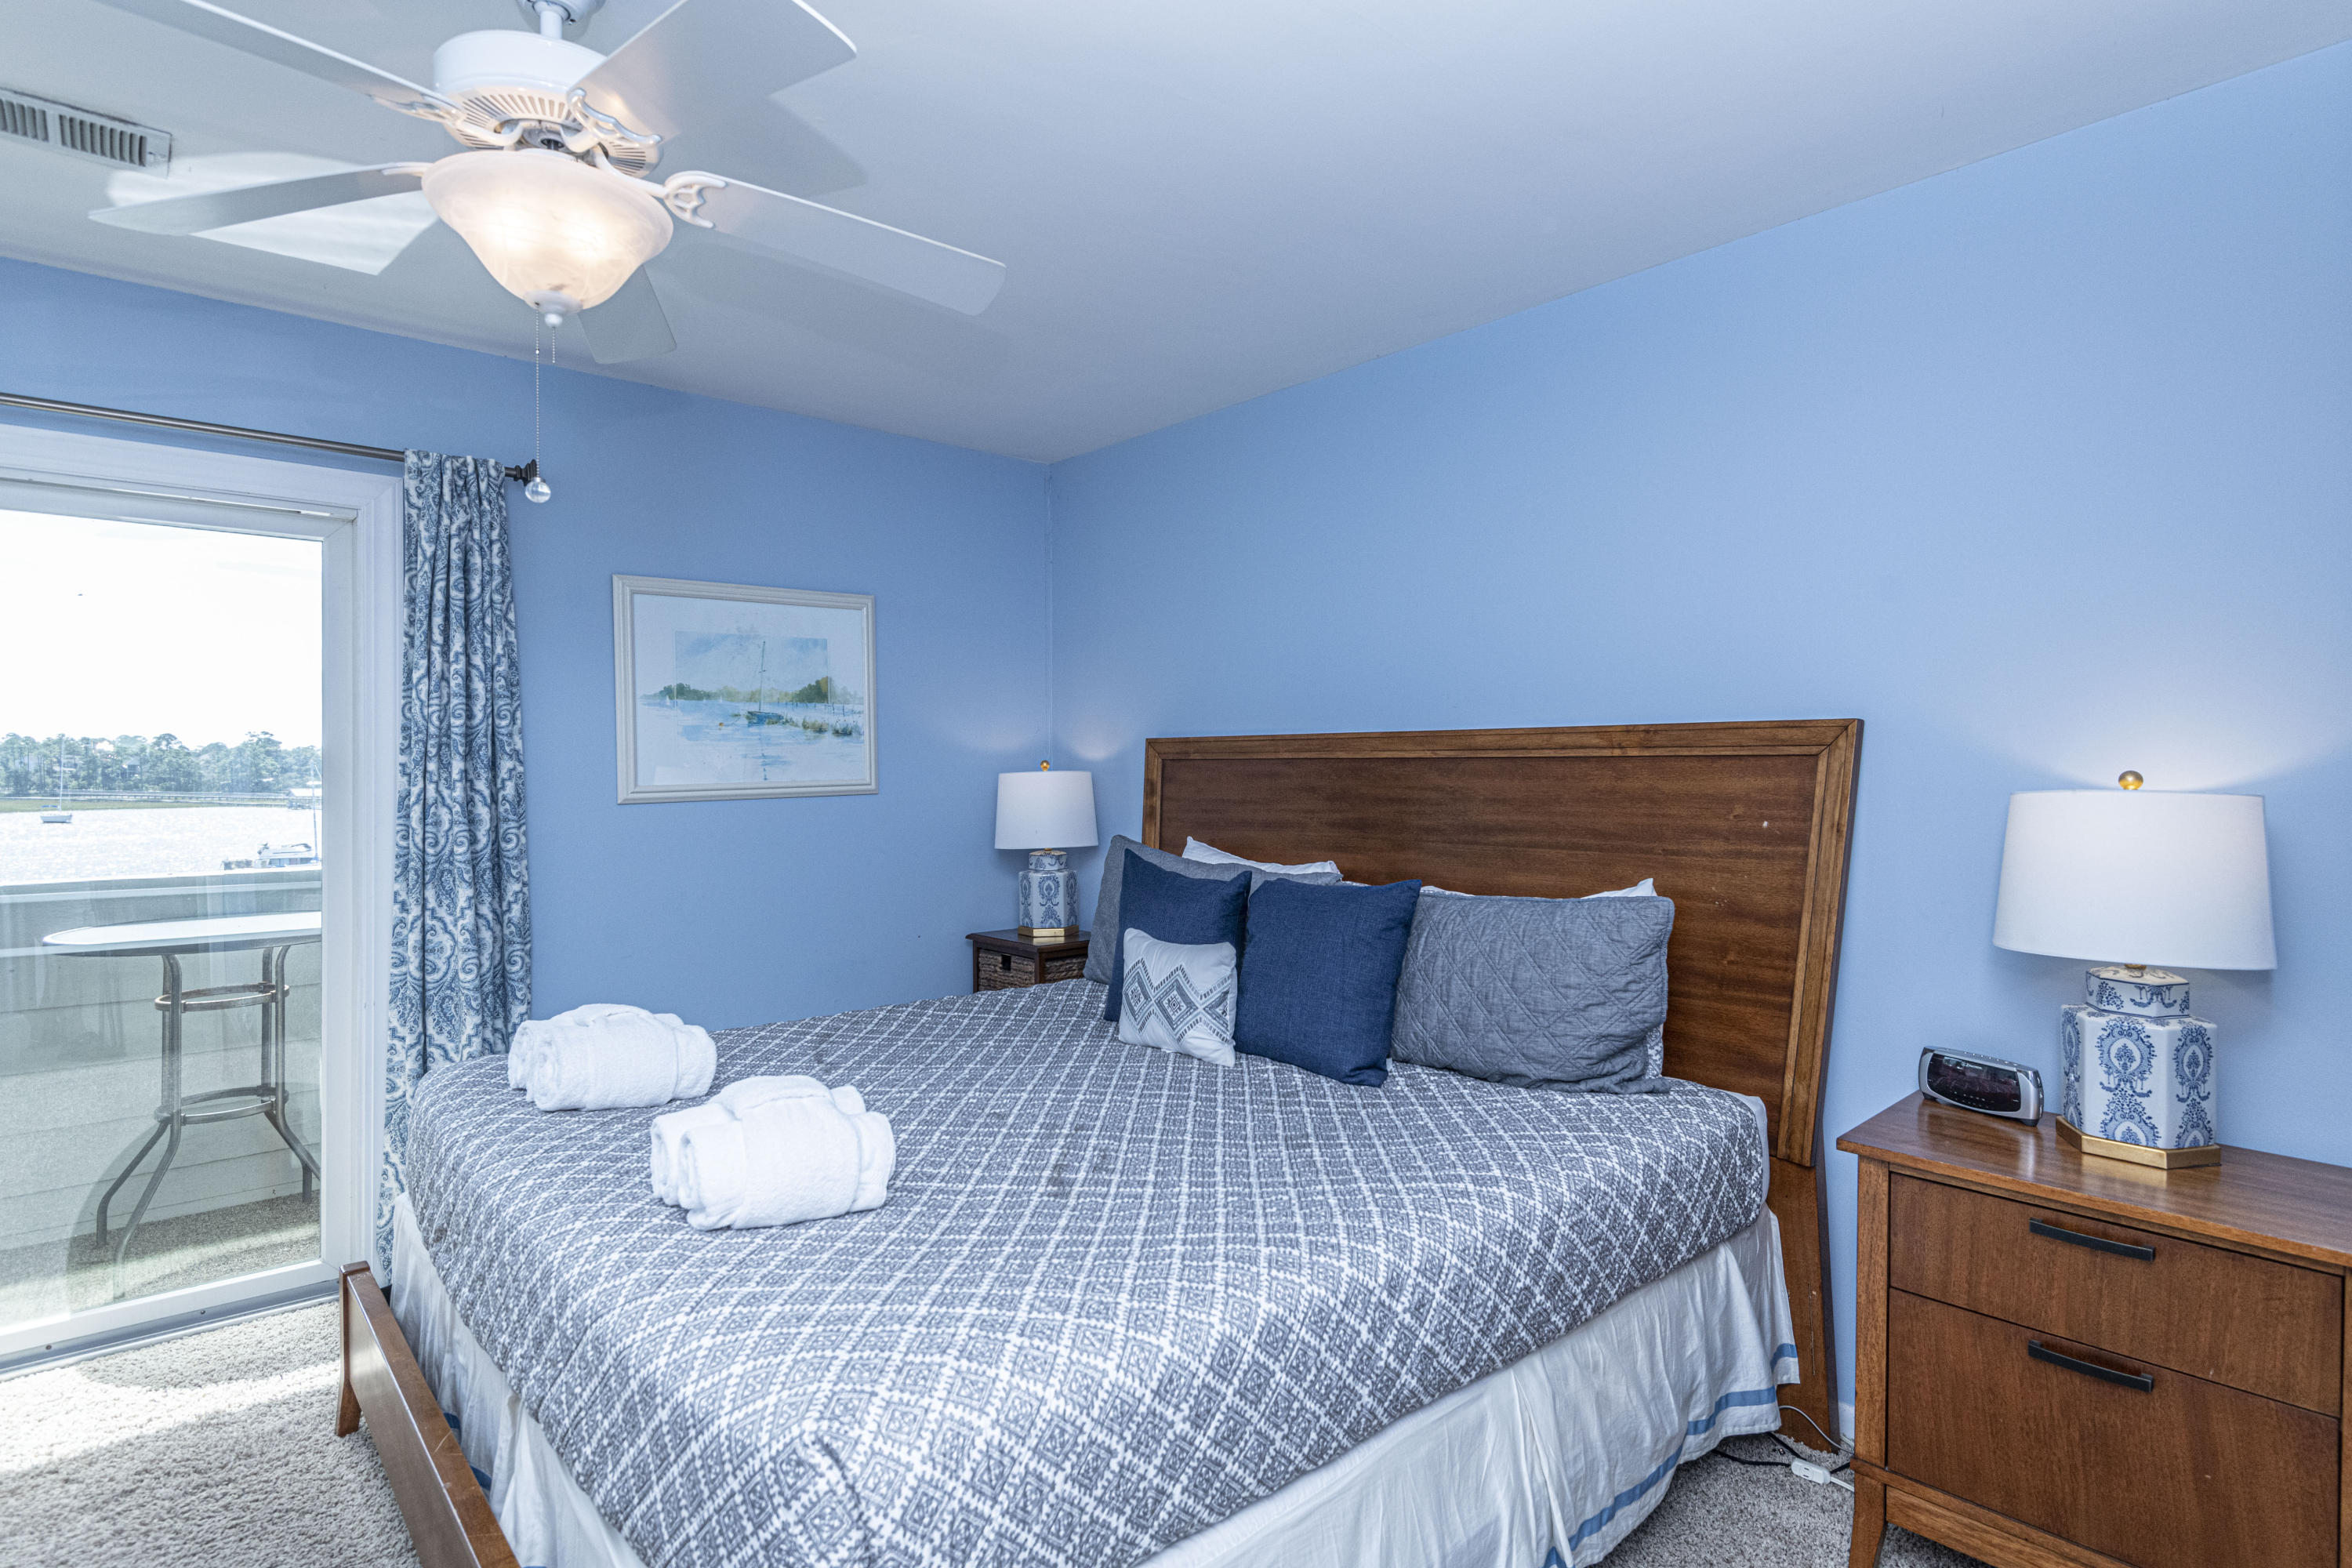 Mariners Cay Homes For Sale - 60 Mariners Cay, Folly Beach, SC - 12